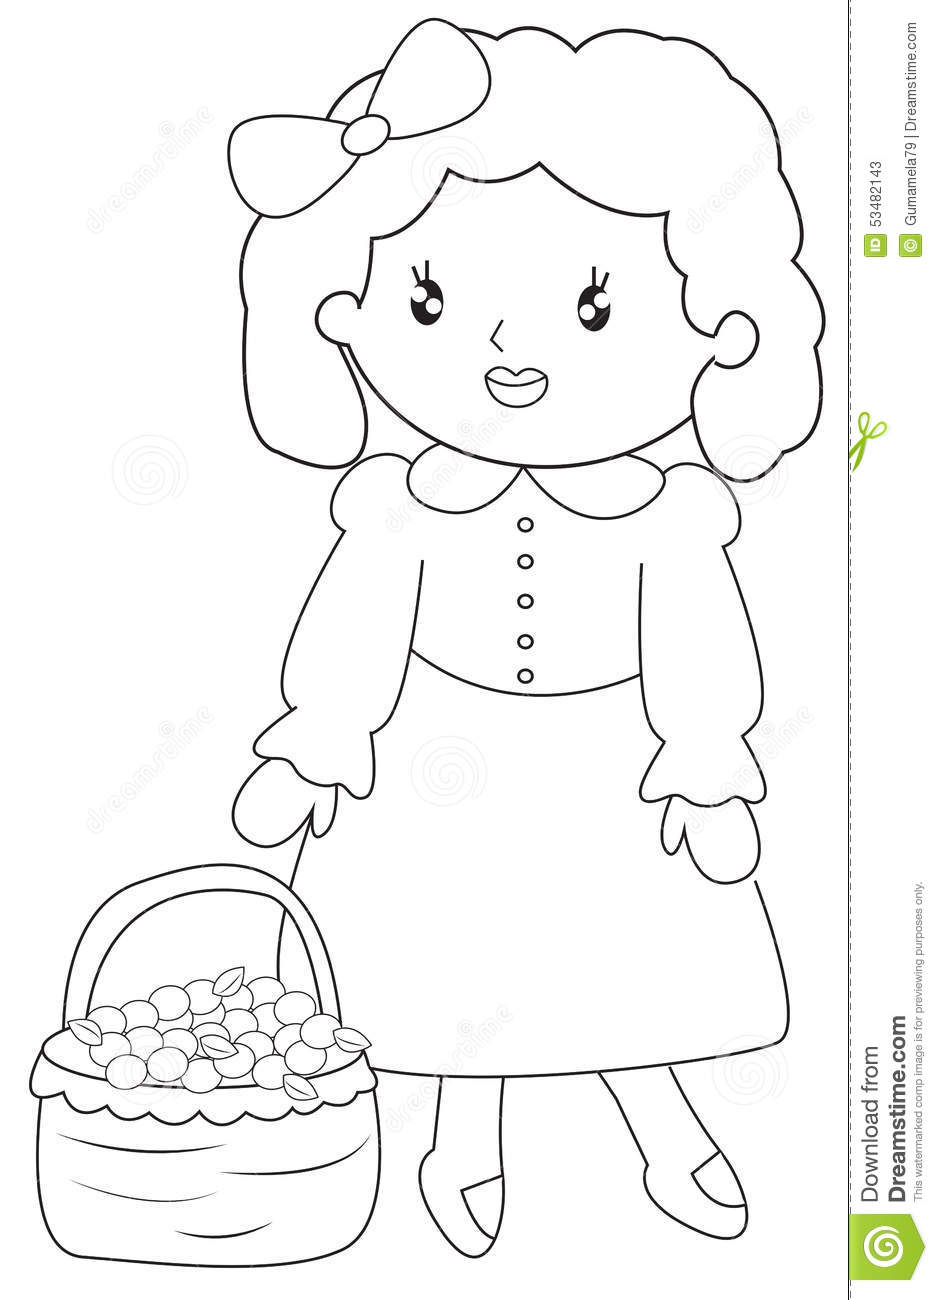 little with a basket of fruits coloring page stock